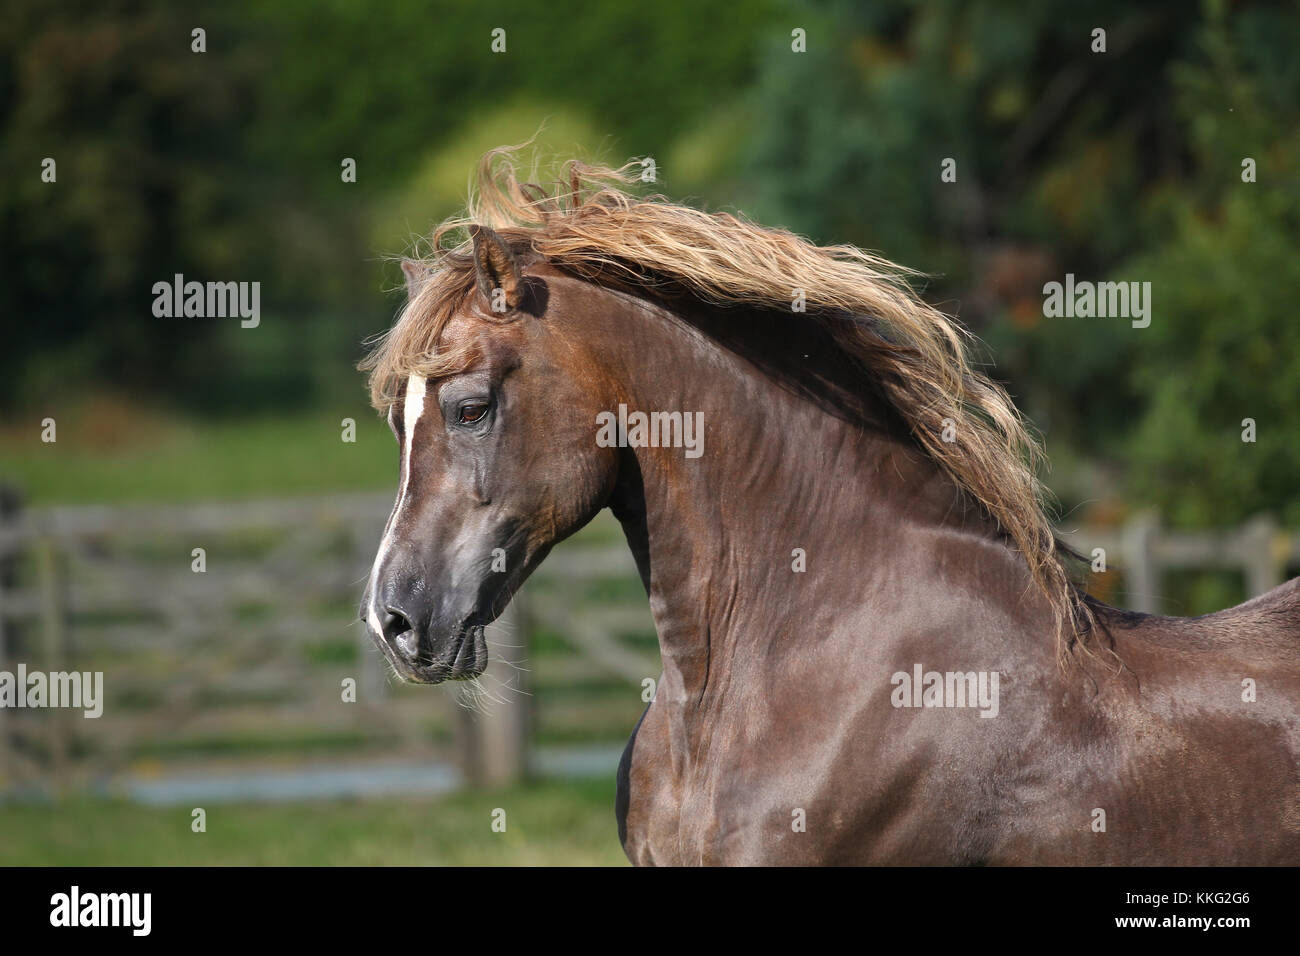 Welsh Pony Stockbild